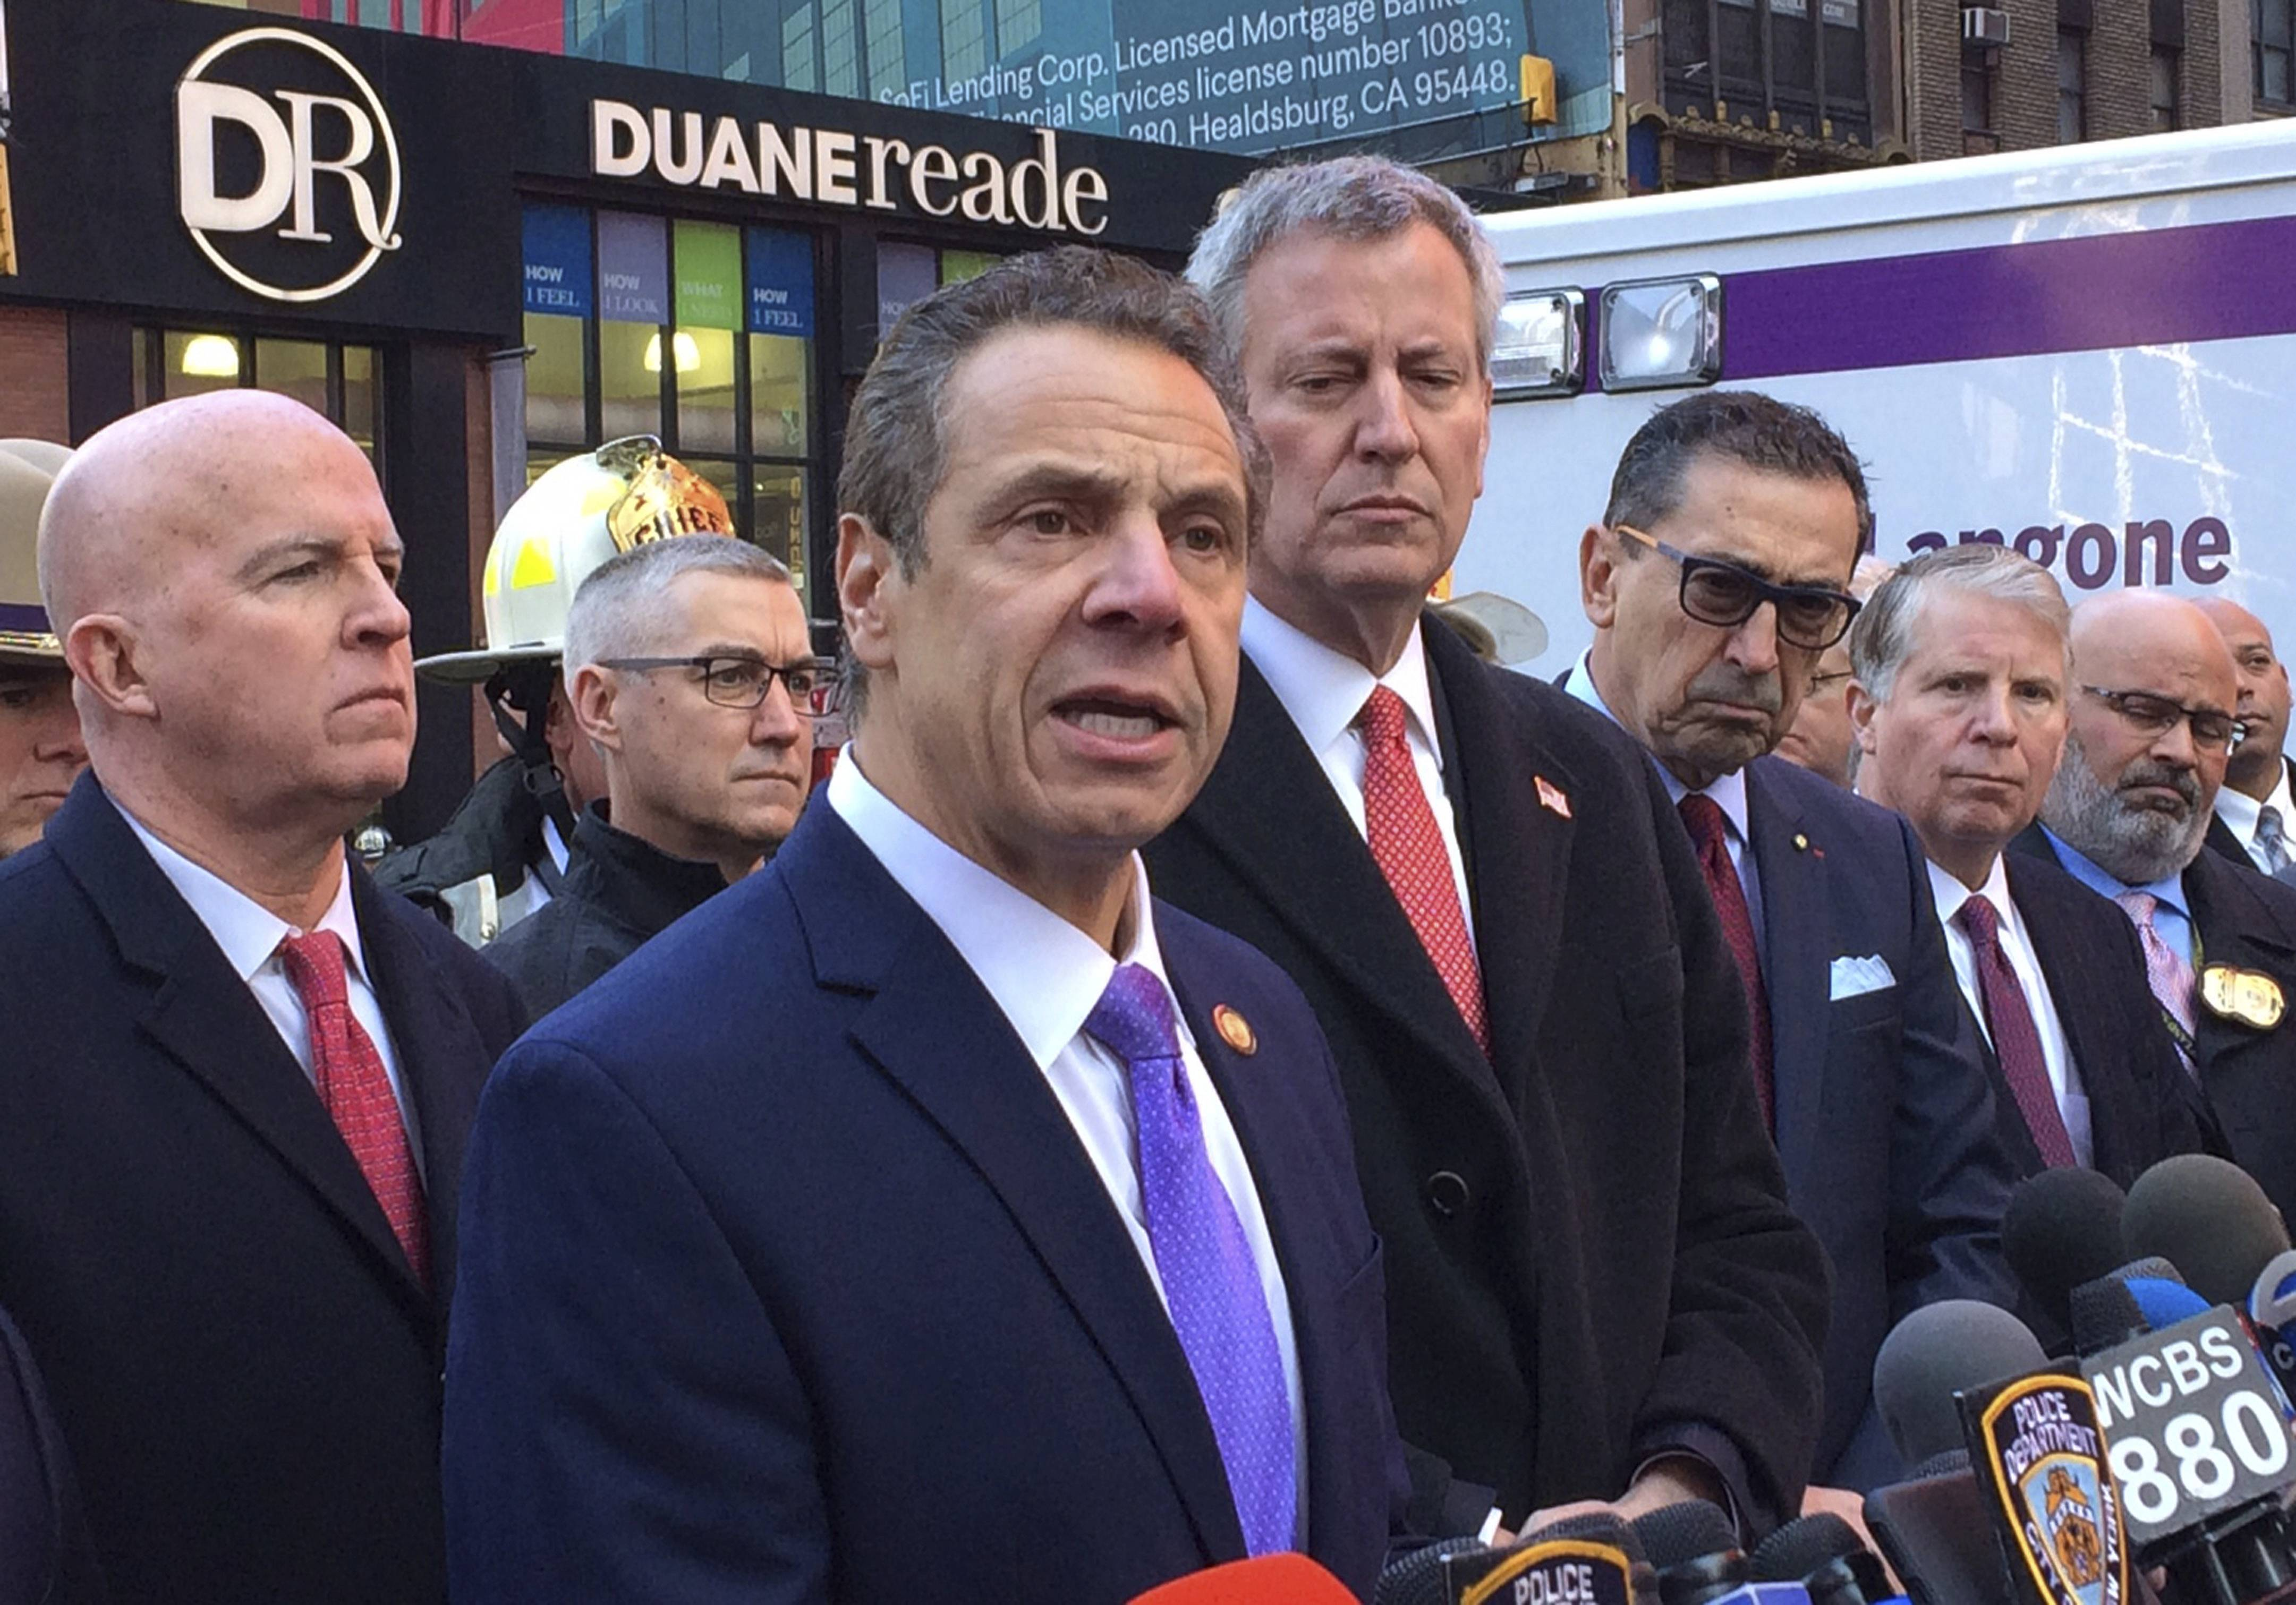 New York Gov. Andrew Cuomo speaks to members of the media Monday after a pipe bomb strapped to a man went off in a New York City subway near Times Square in New York. Mayor Bill de Blasio stands fourth from left.